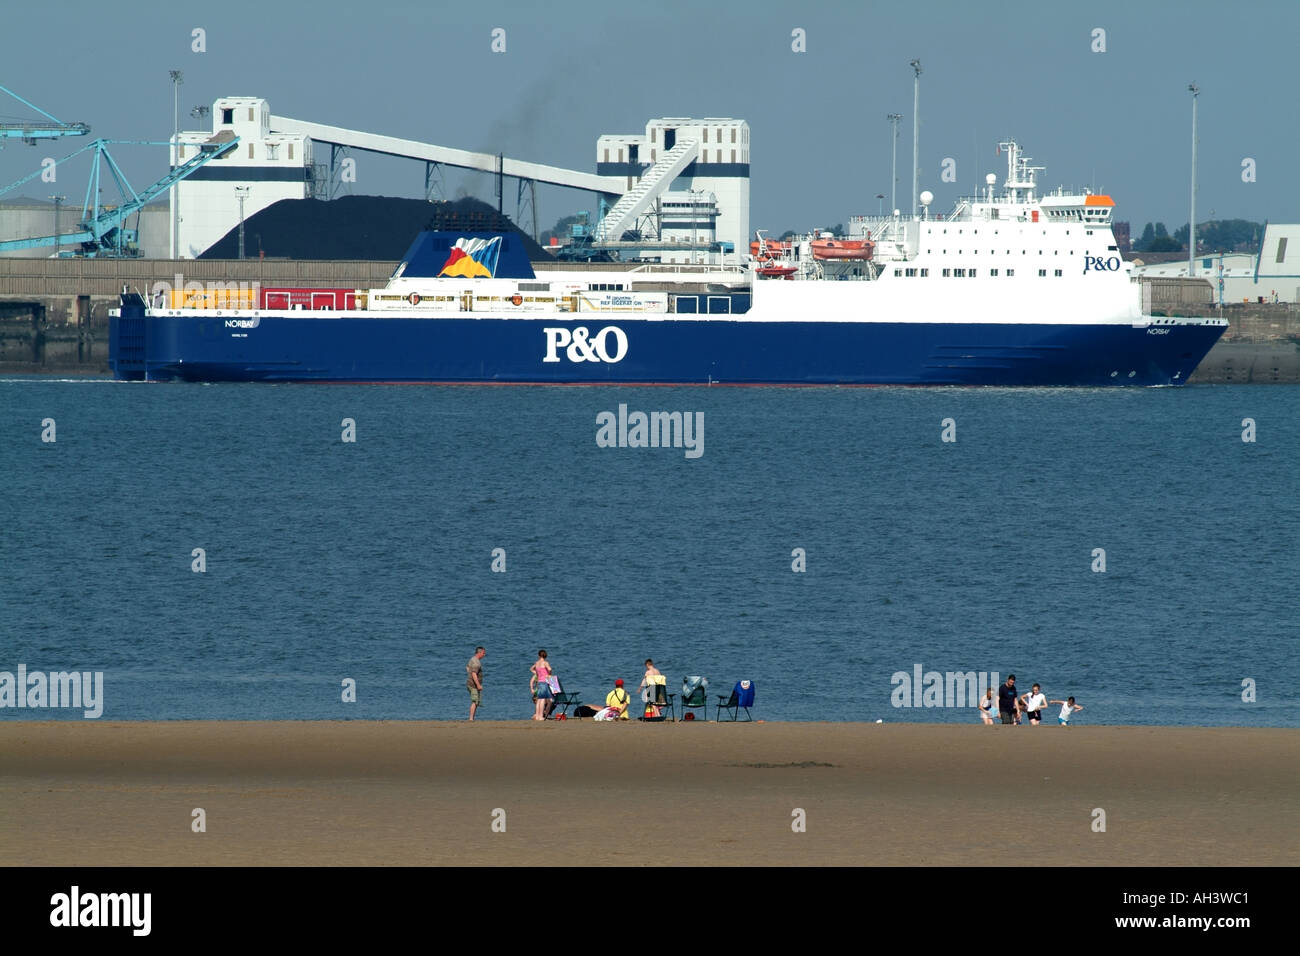 P and O P&O vessel Norbay on the River Mersey Merseyside Liverpool northern England UK New Brighton beach - Stock Image